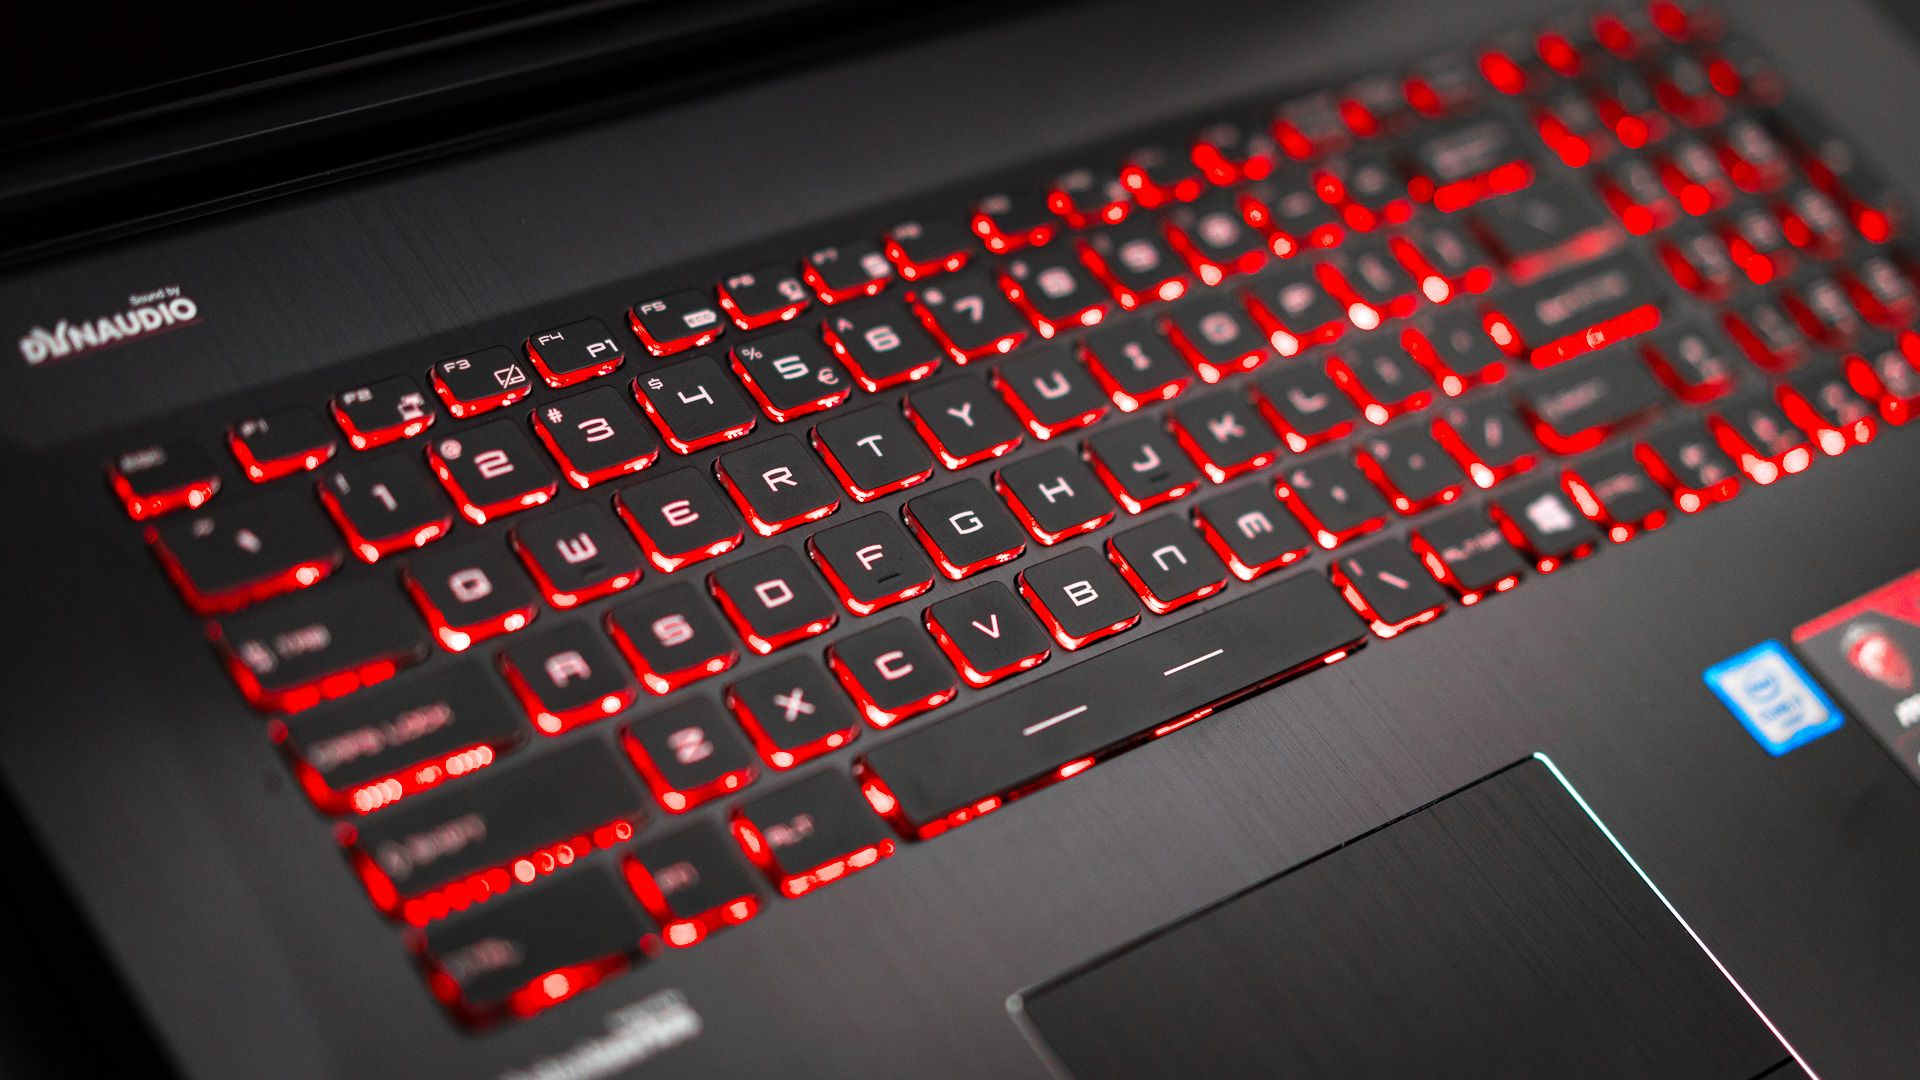 1920x1080 Review: MSI's New VR Laptops - GT73VR,GS63VR and GE72VR | Unlocked